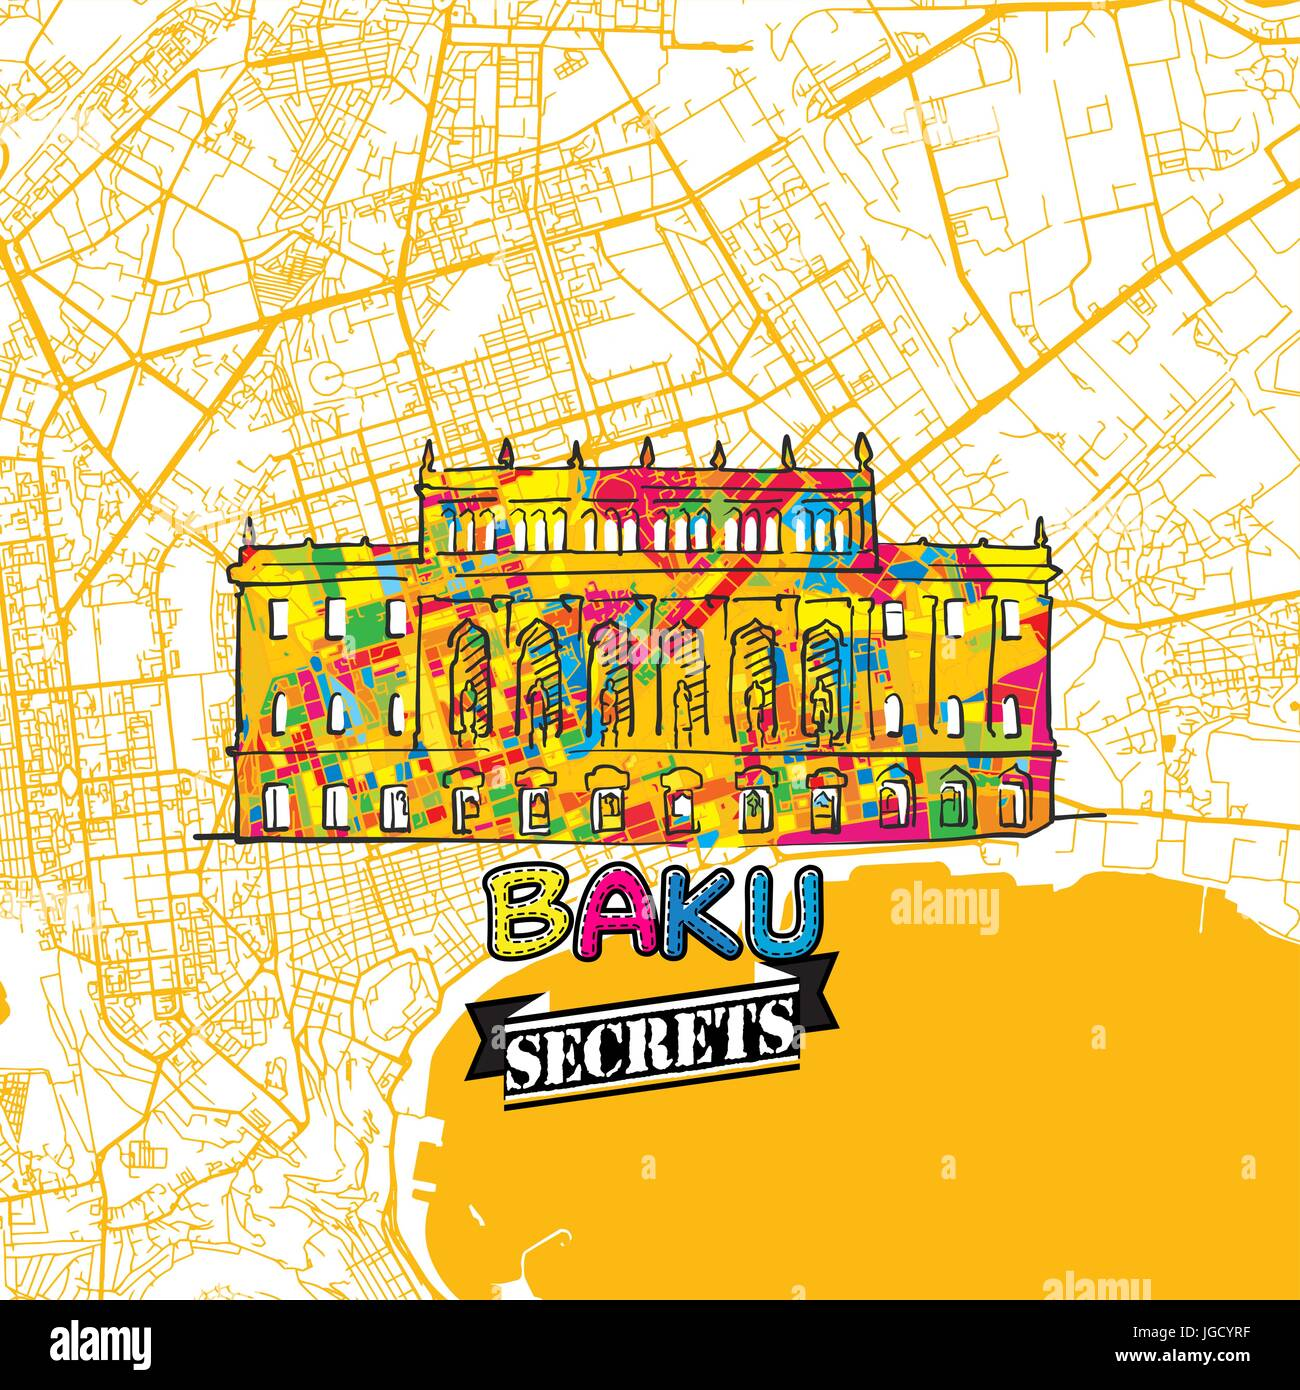 Baku Travel Secrets Art Map for mapping experts and travel guides. Handmade city logo, typo badge and hand drawn - Stock Vector